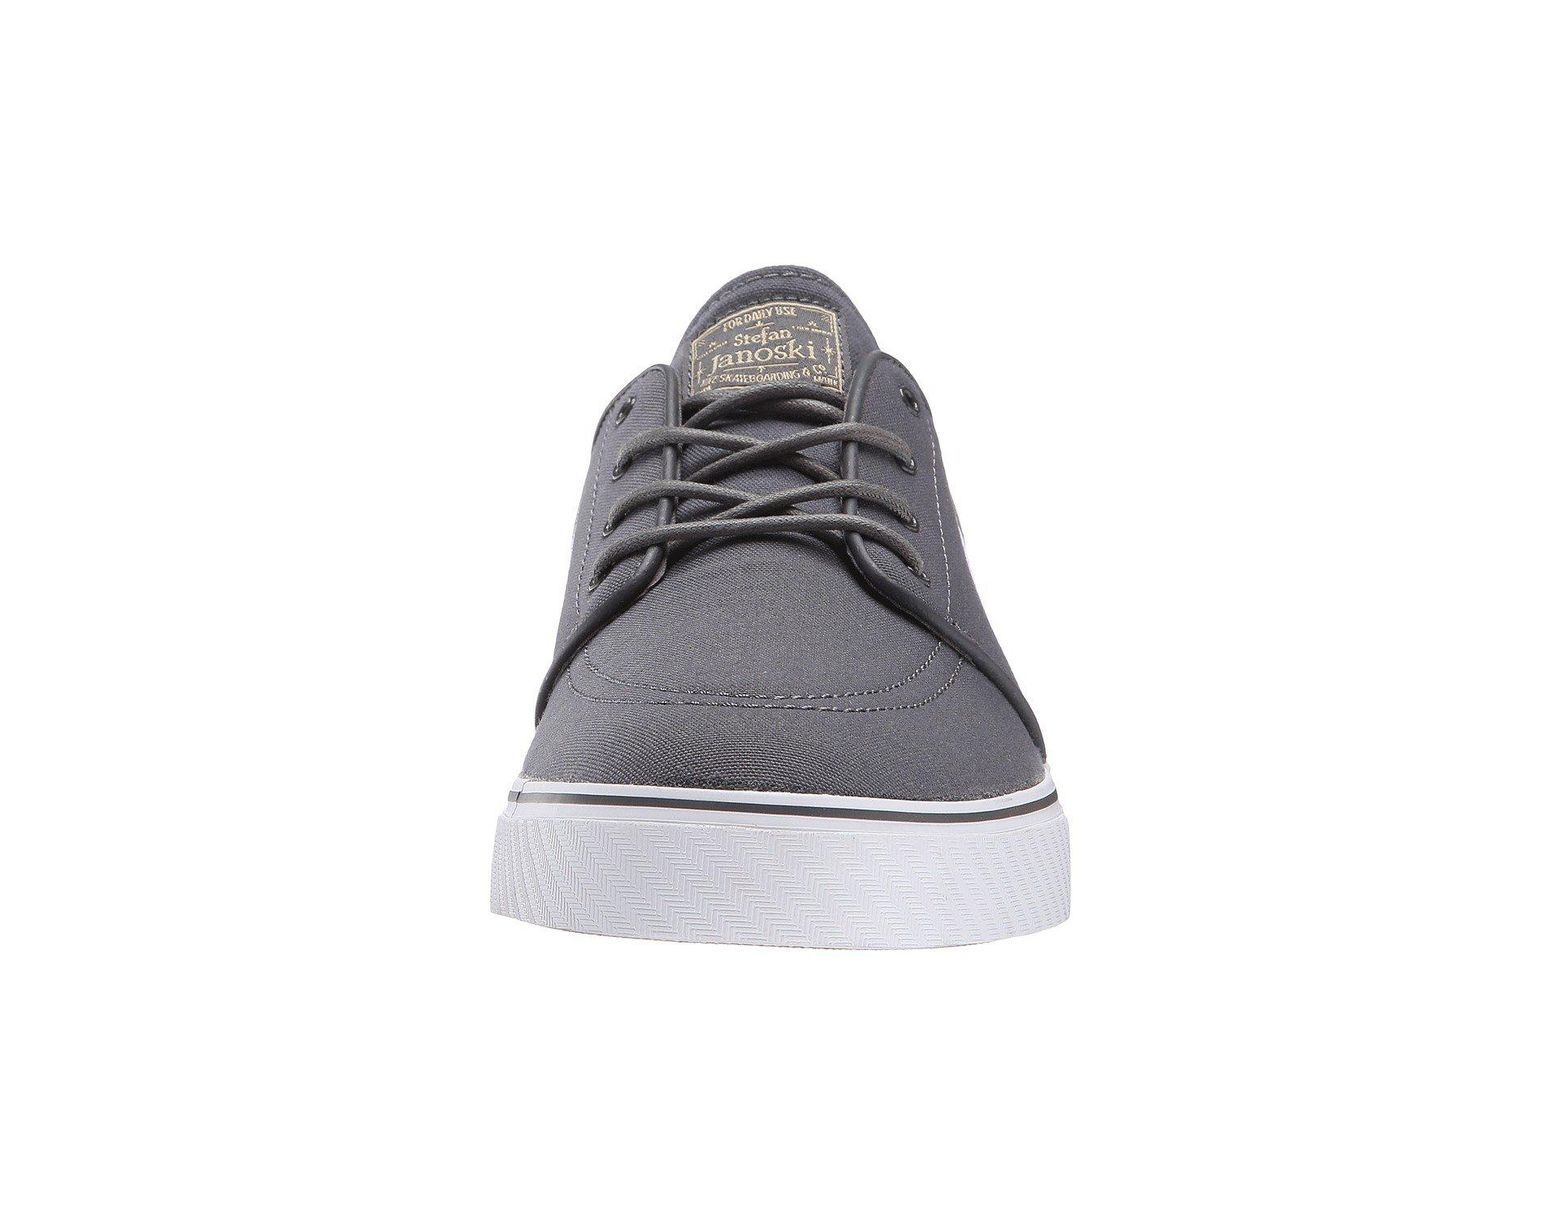 quality design 644d0 088d0 Nike Zoom Stefan Janoski Canvas (dark Grey gum Light Brown metallic Gold  Star white) Men s Skate Shoes in Gray for Men - Lyst